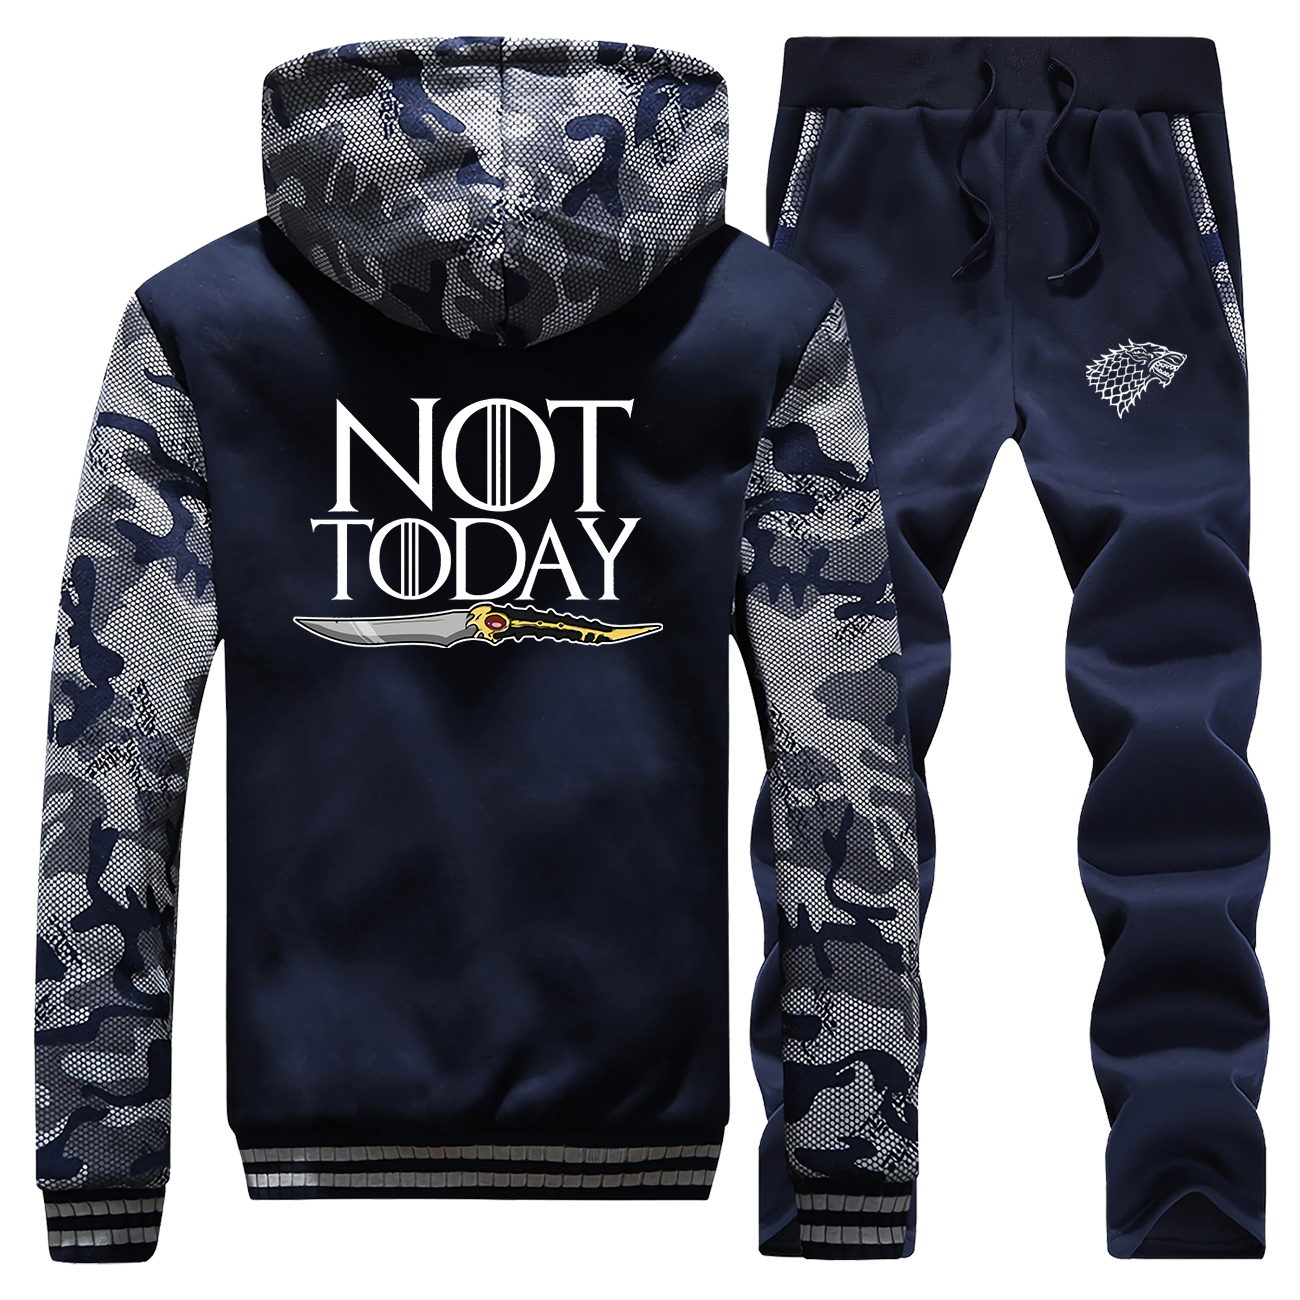 Game Of Thrones Hoodies Pant Set Men Ayra House Stark Tracksuit Coat Track Suit Winter Thick Not Today Jacket Camo 2 PCS Sets